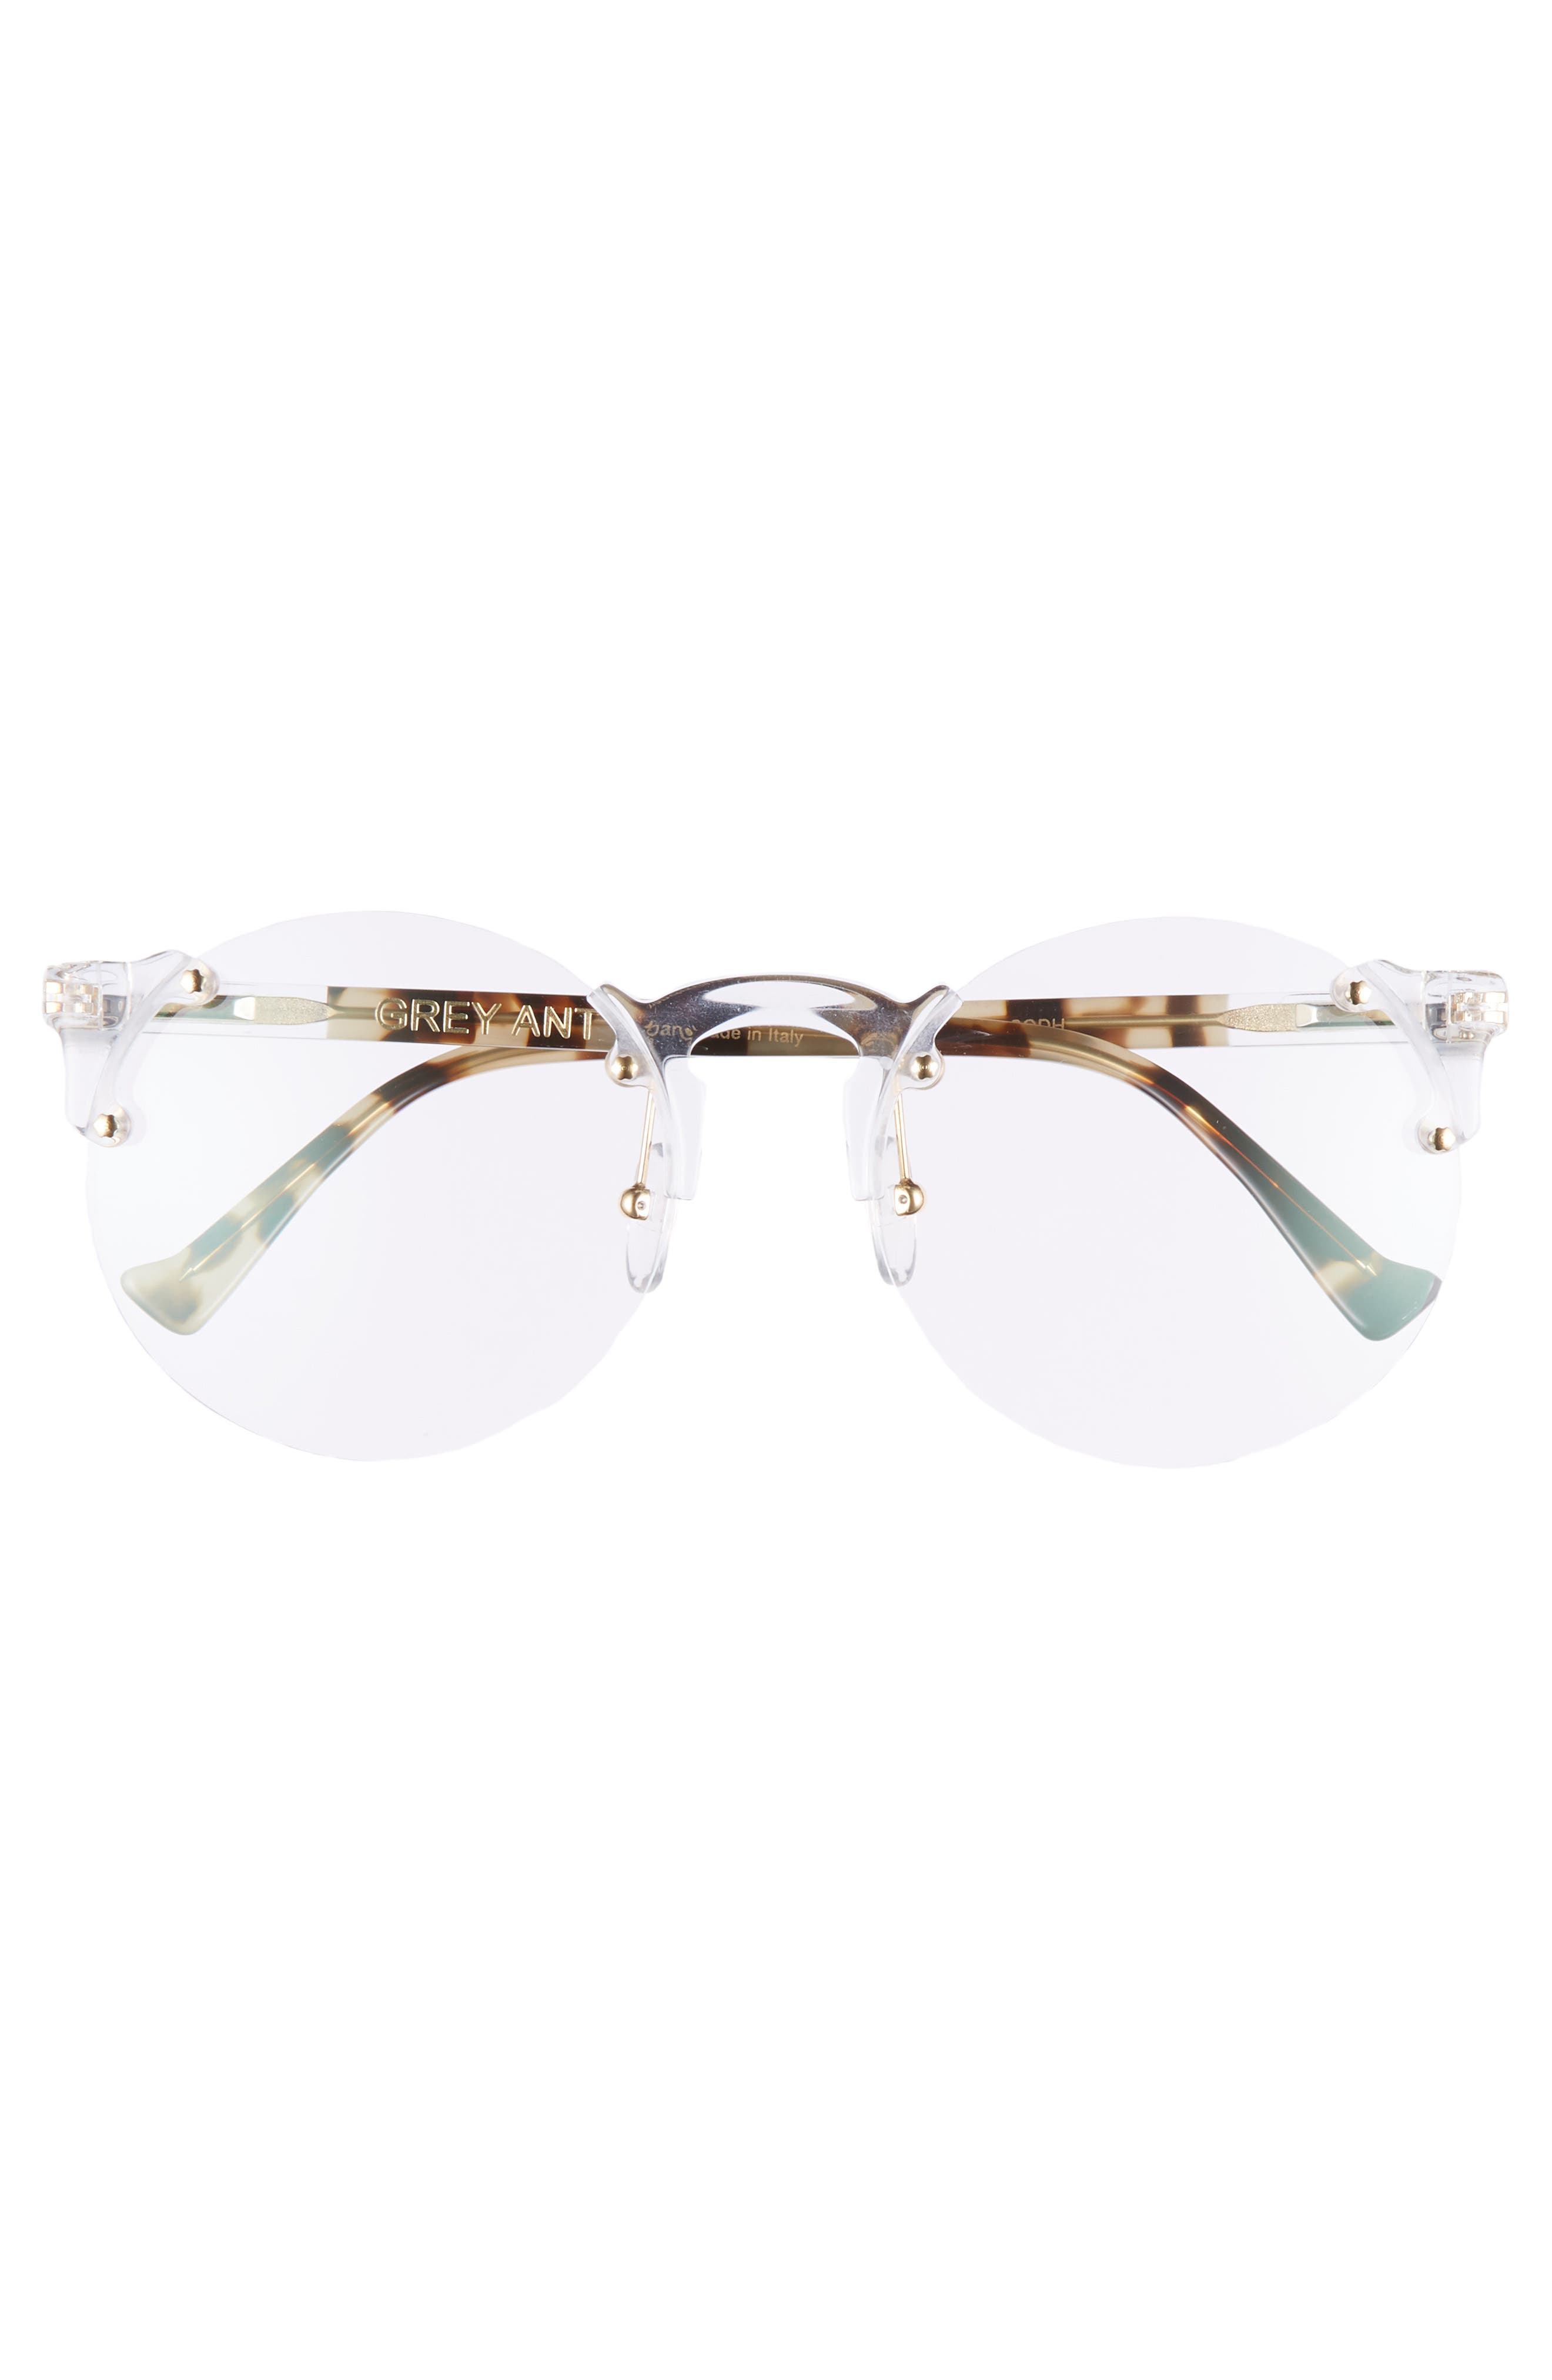 Solo 57mm Rimless Optical Glasses,                             Alternate thumbnail 3, color,                             CLEAR/ GOLD